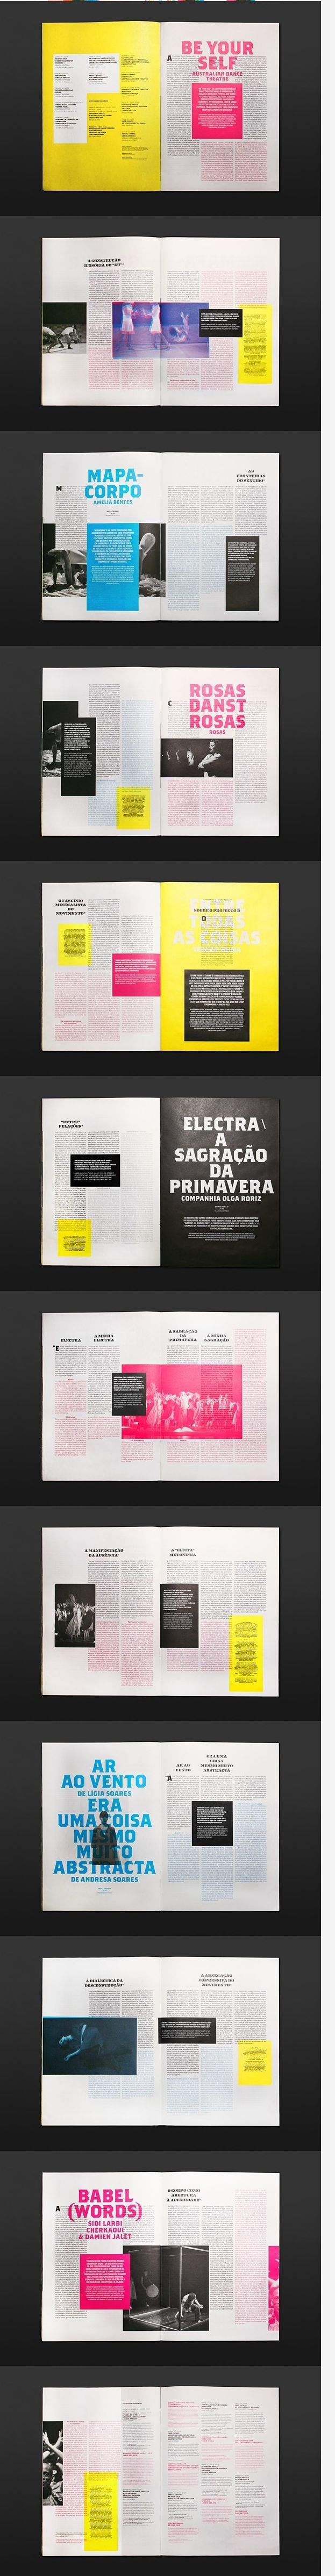 Editorial Design Inspiration   Abduzeedo Design Inspiration